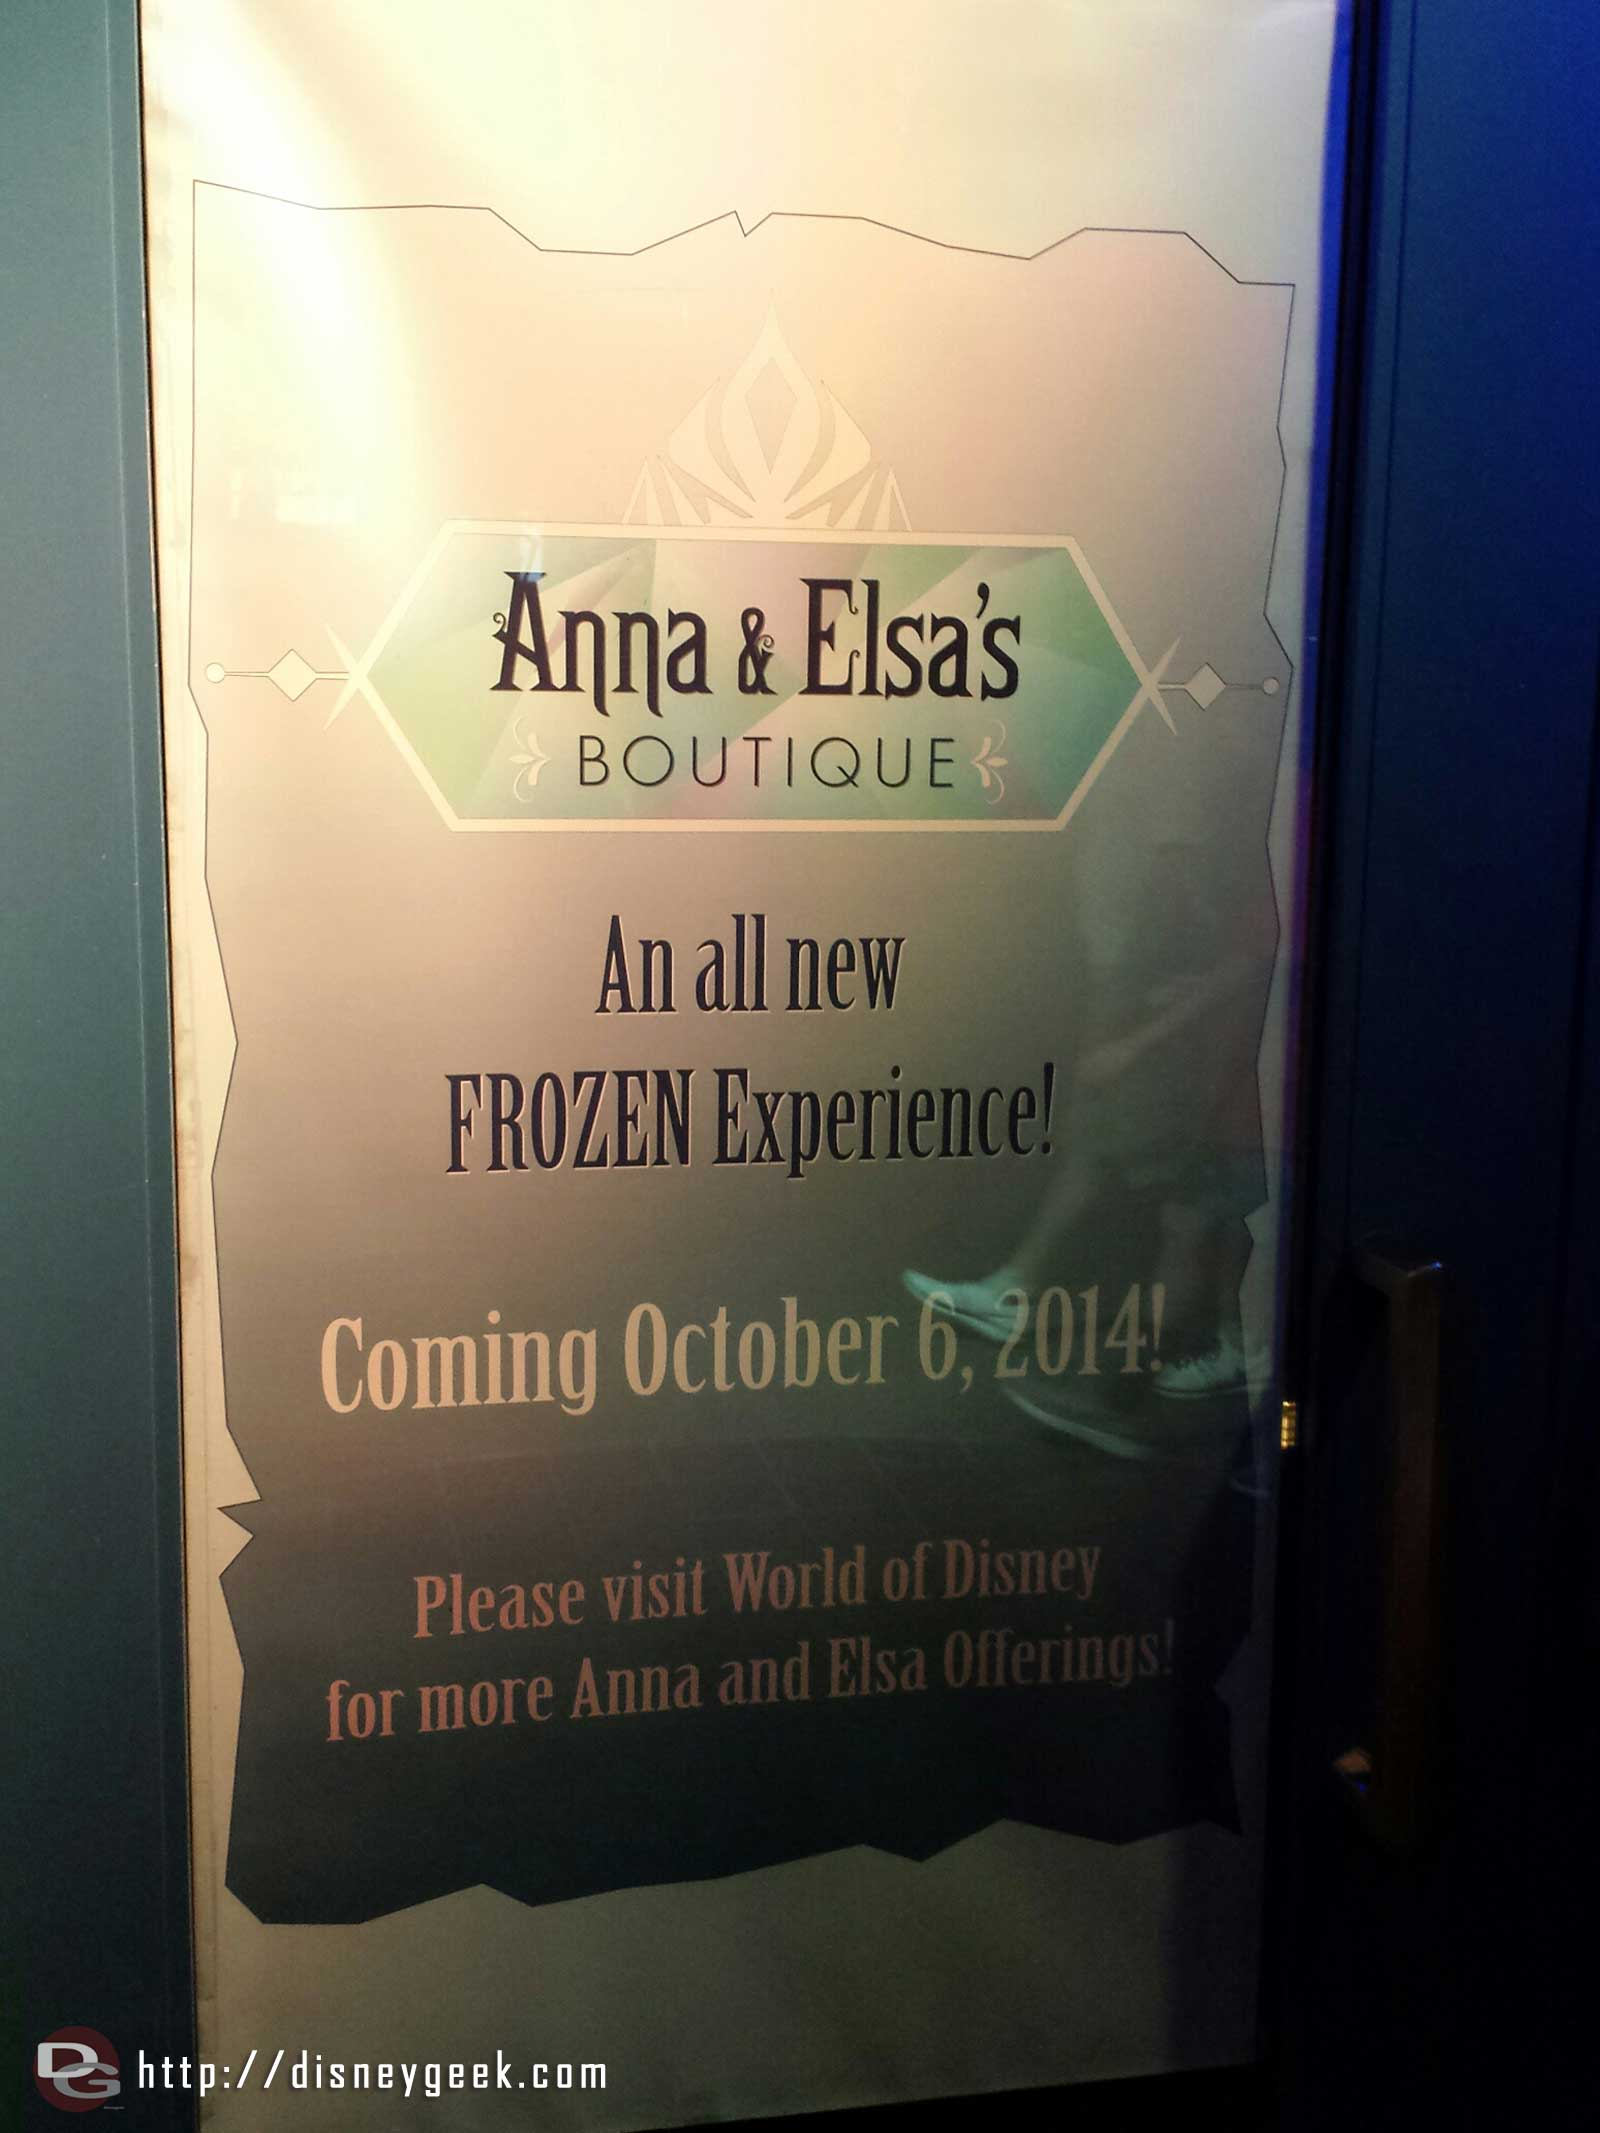 Anna & Elsa's Boutique is replacing Studio 365